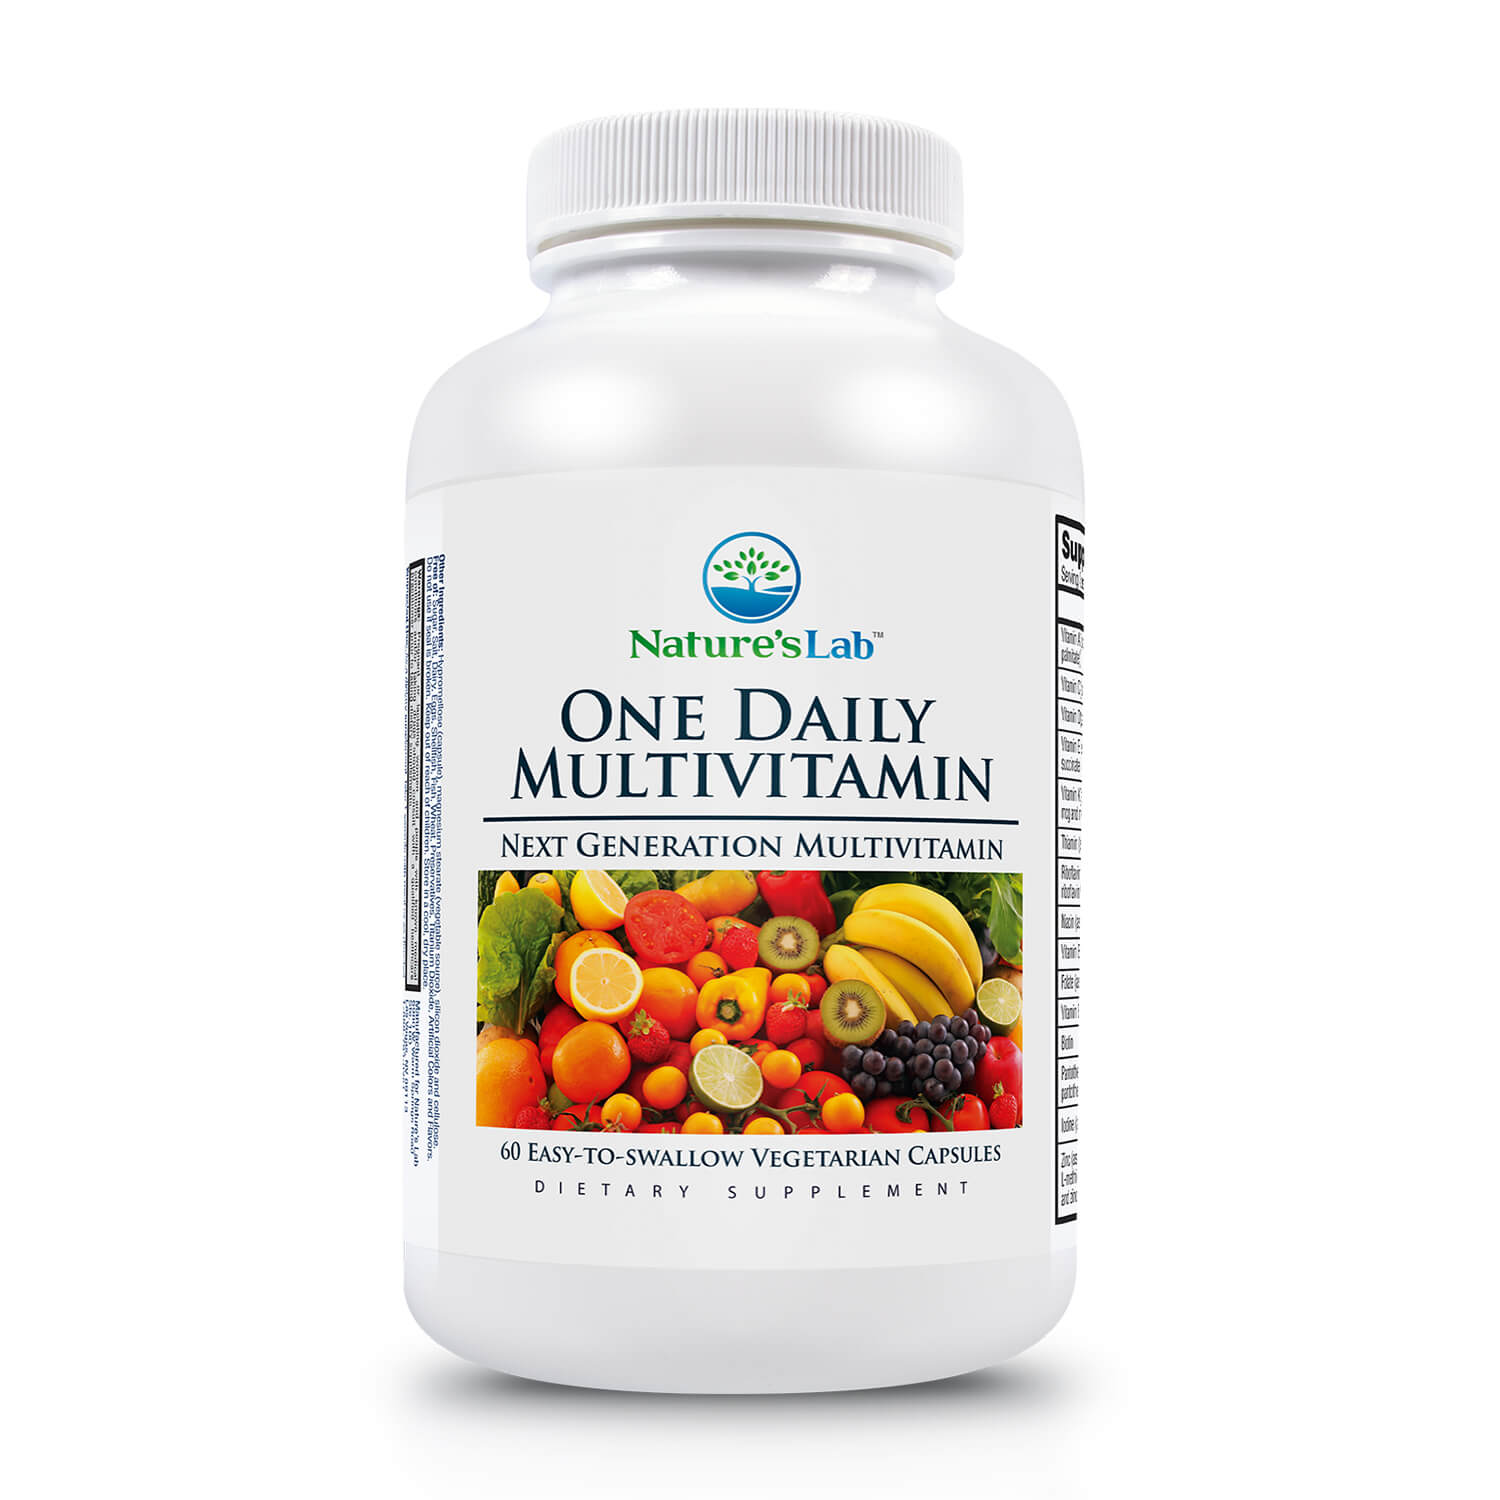 Nature's Lab One Daily Multivitamin - 60 Capsules